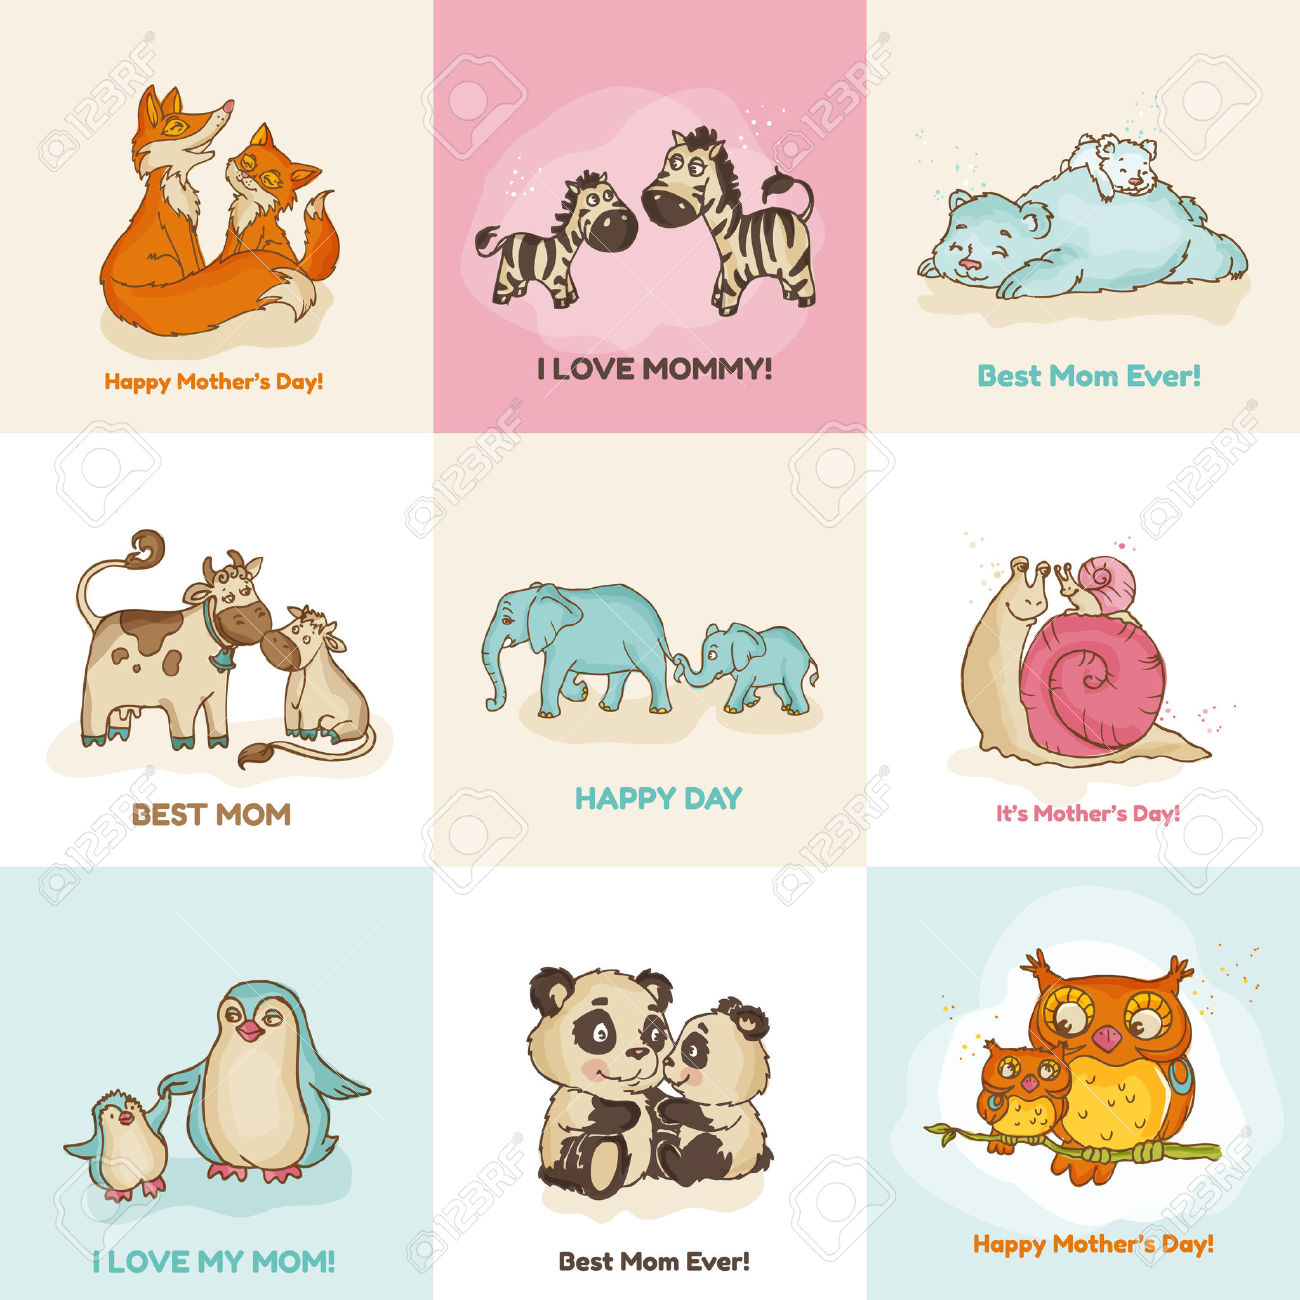 Cute Animal Mothers Day Clipart Images.